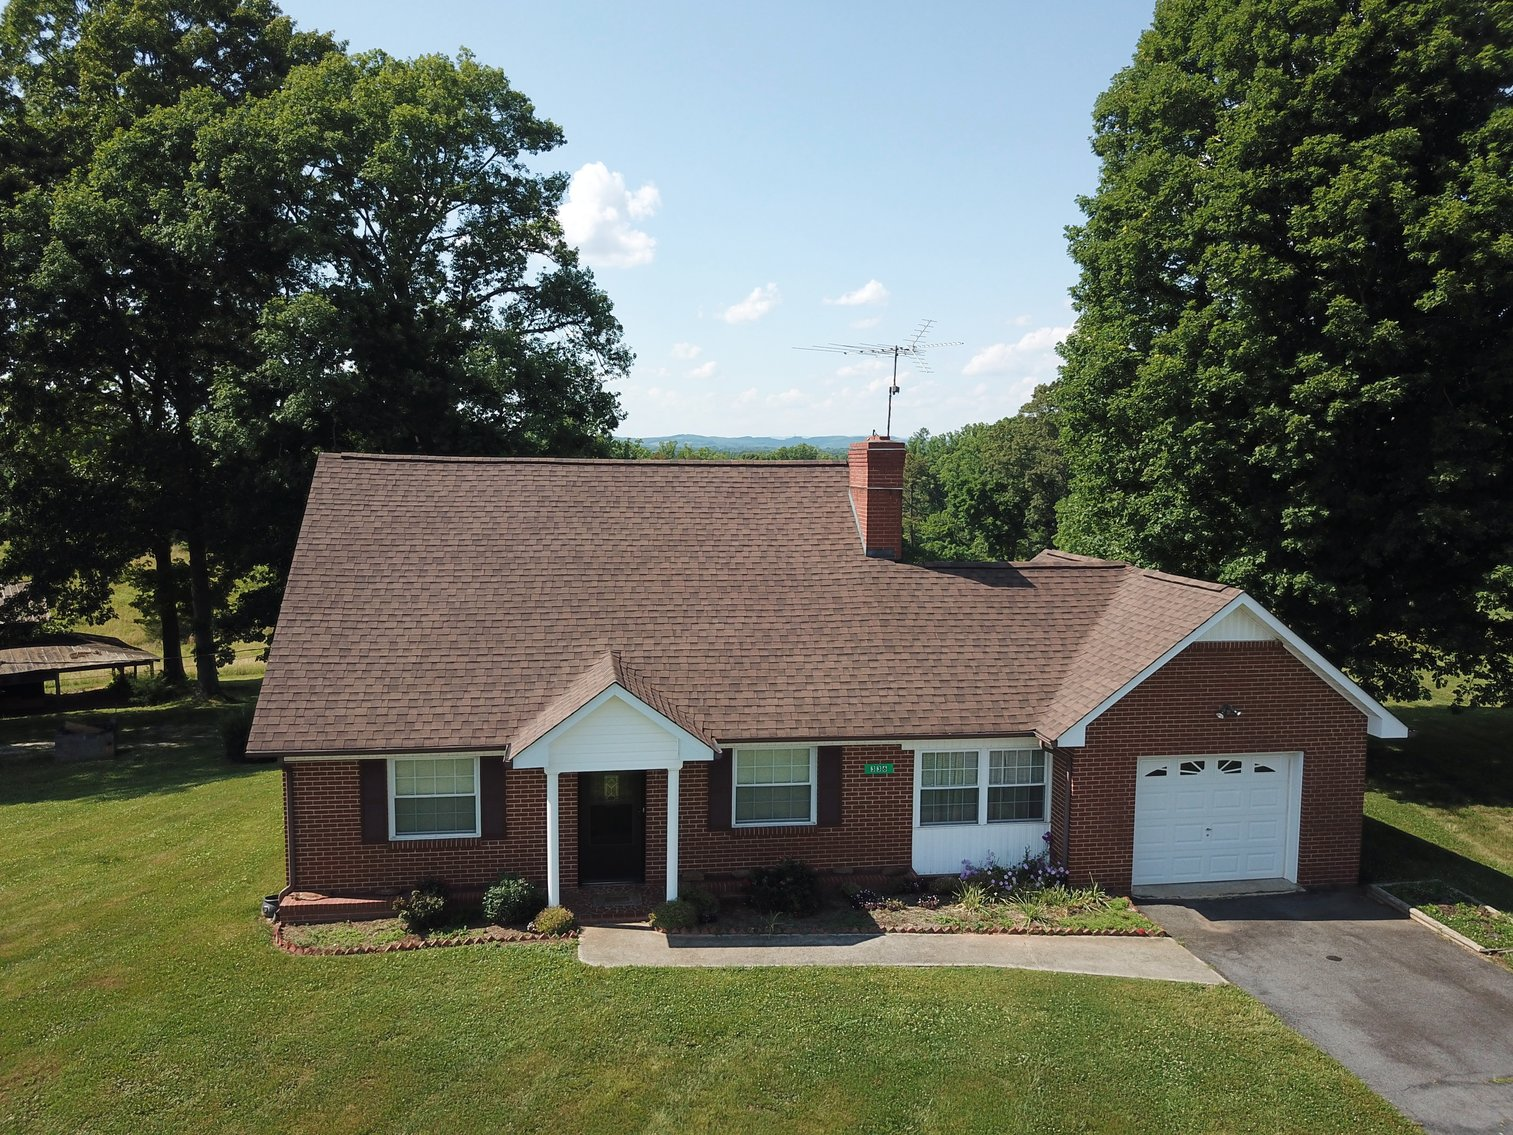 Surry County Home with acreage